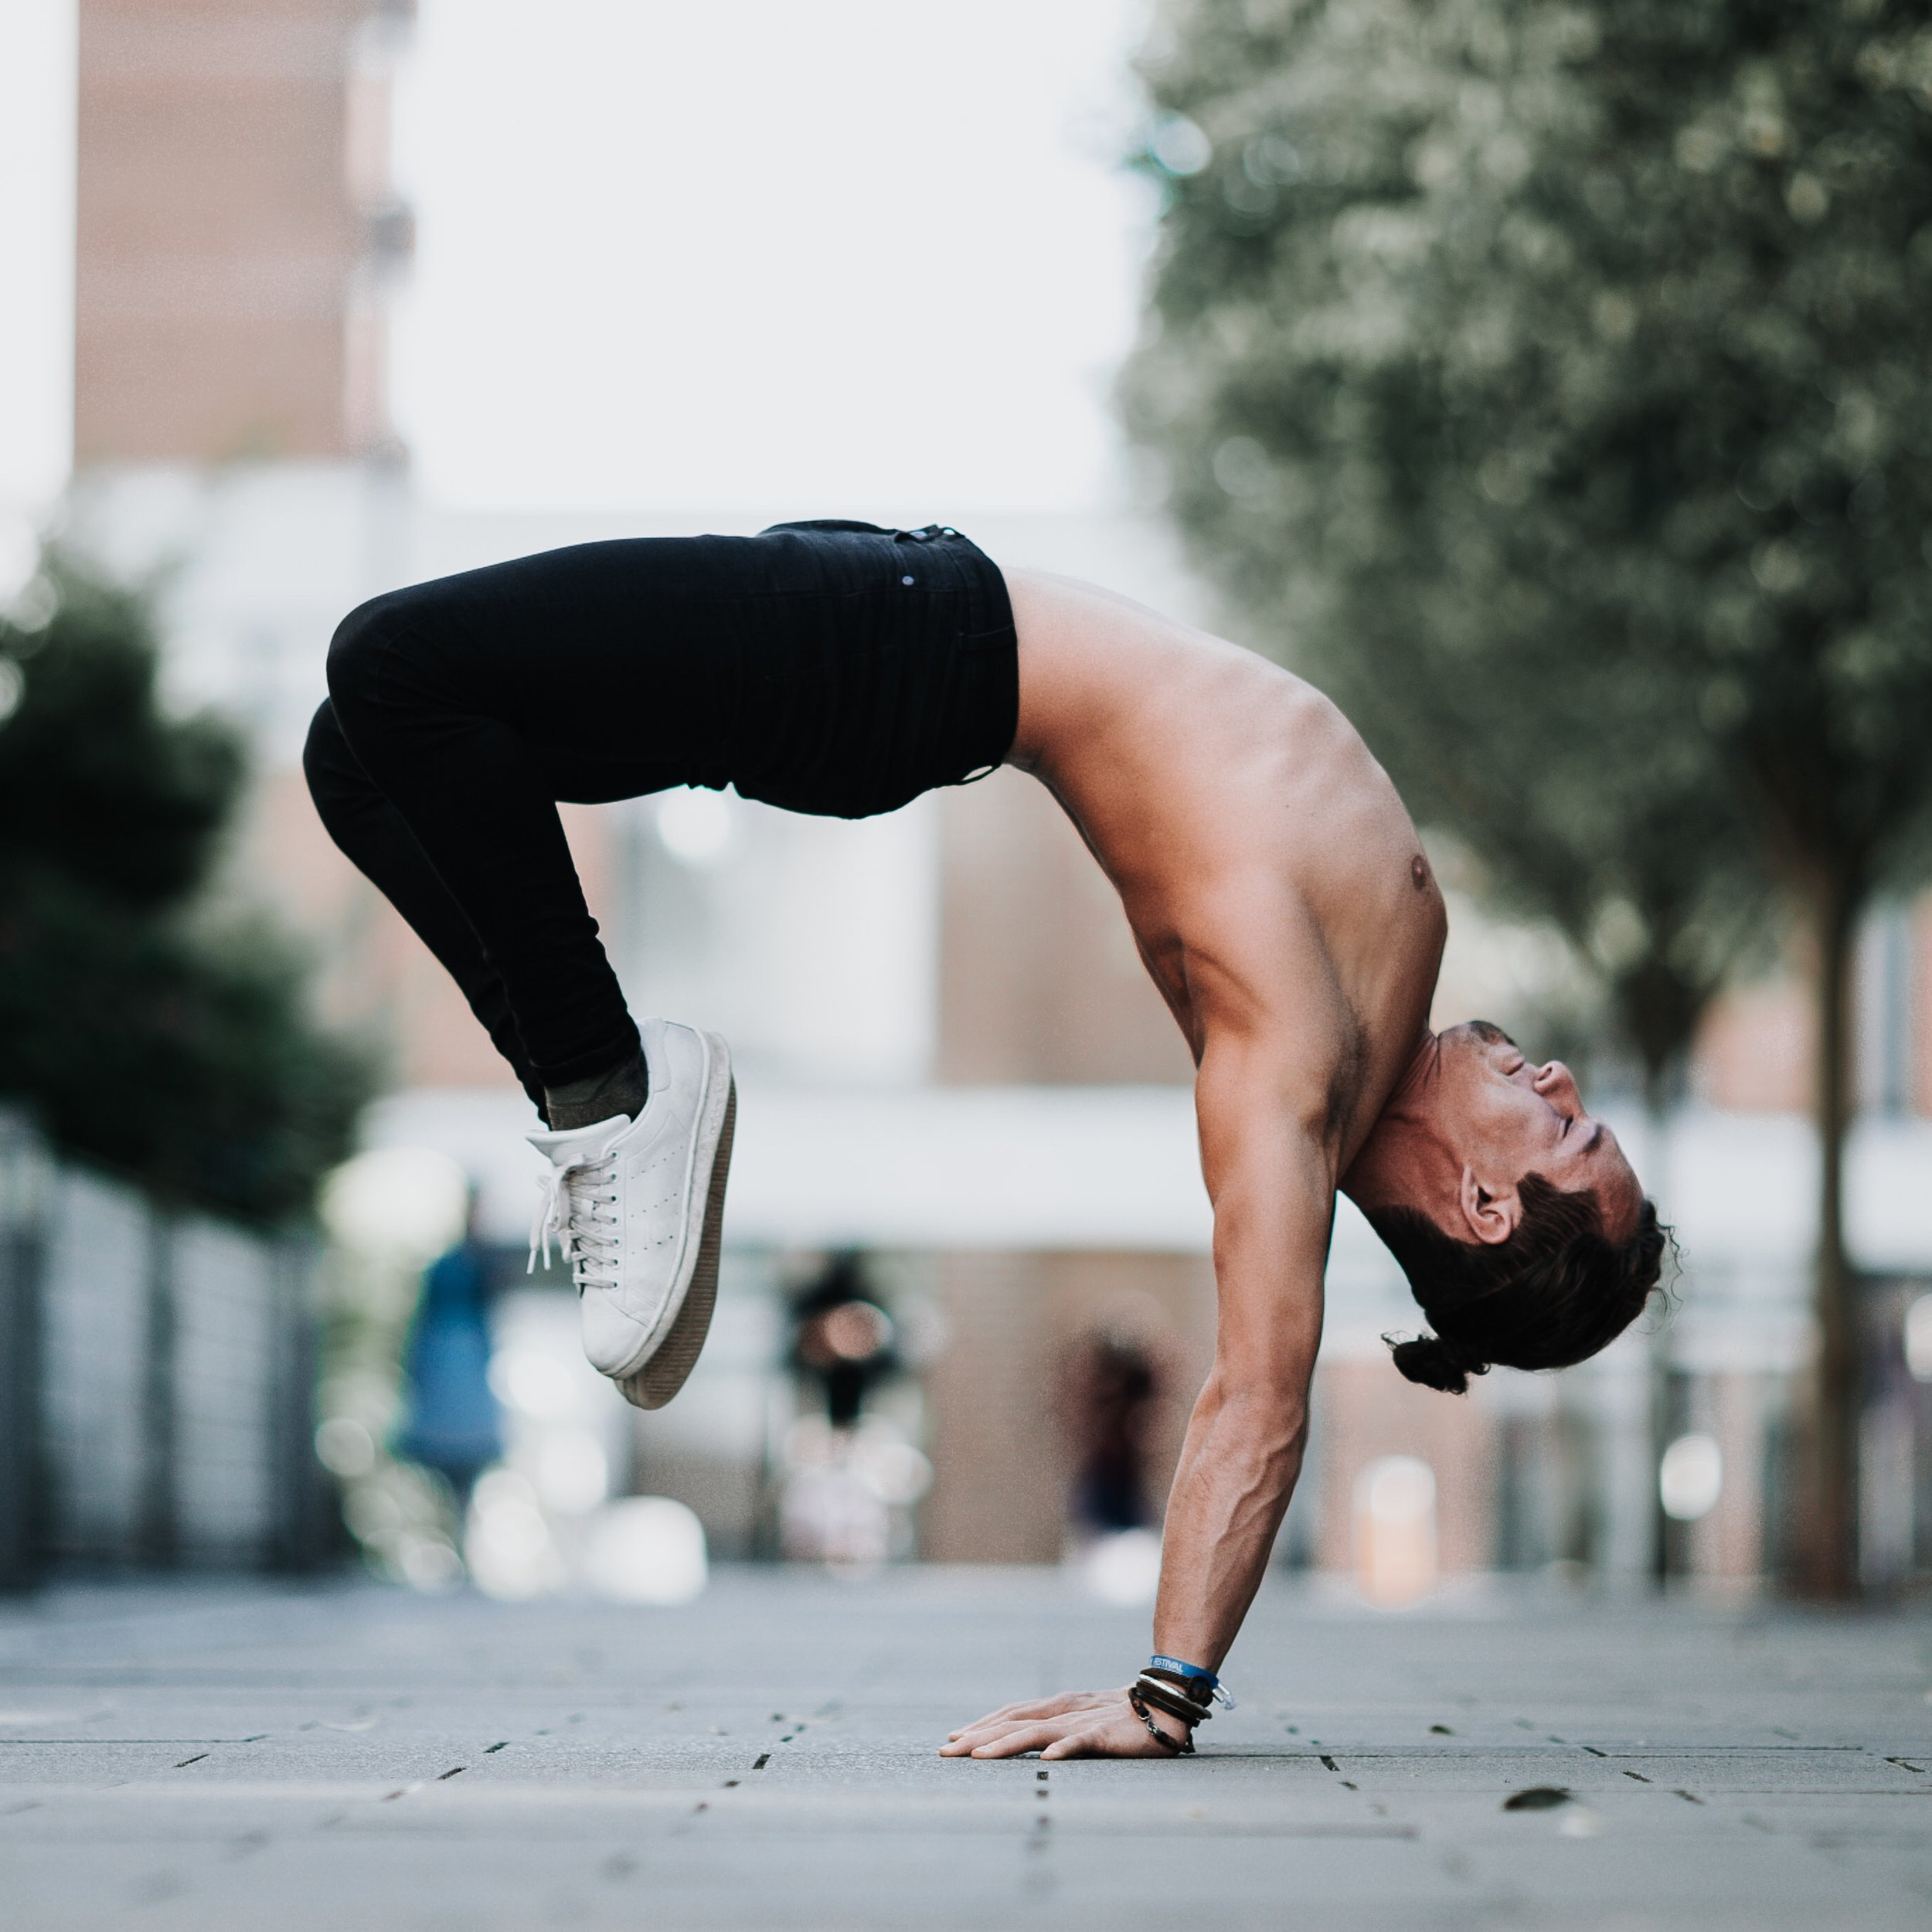 DAN MORGAN | DCMLIFESTYLE & YOGA | HOLLOWBACK HANDSTAND